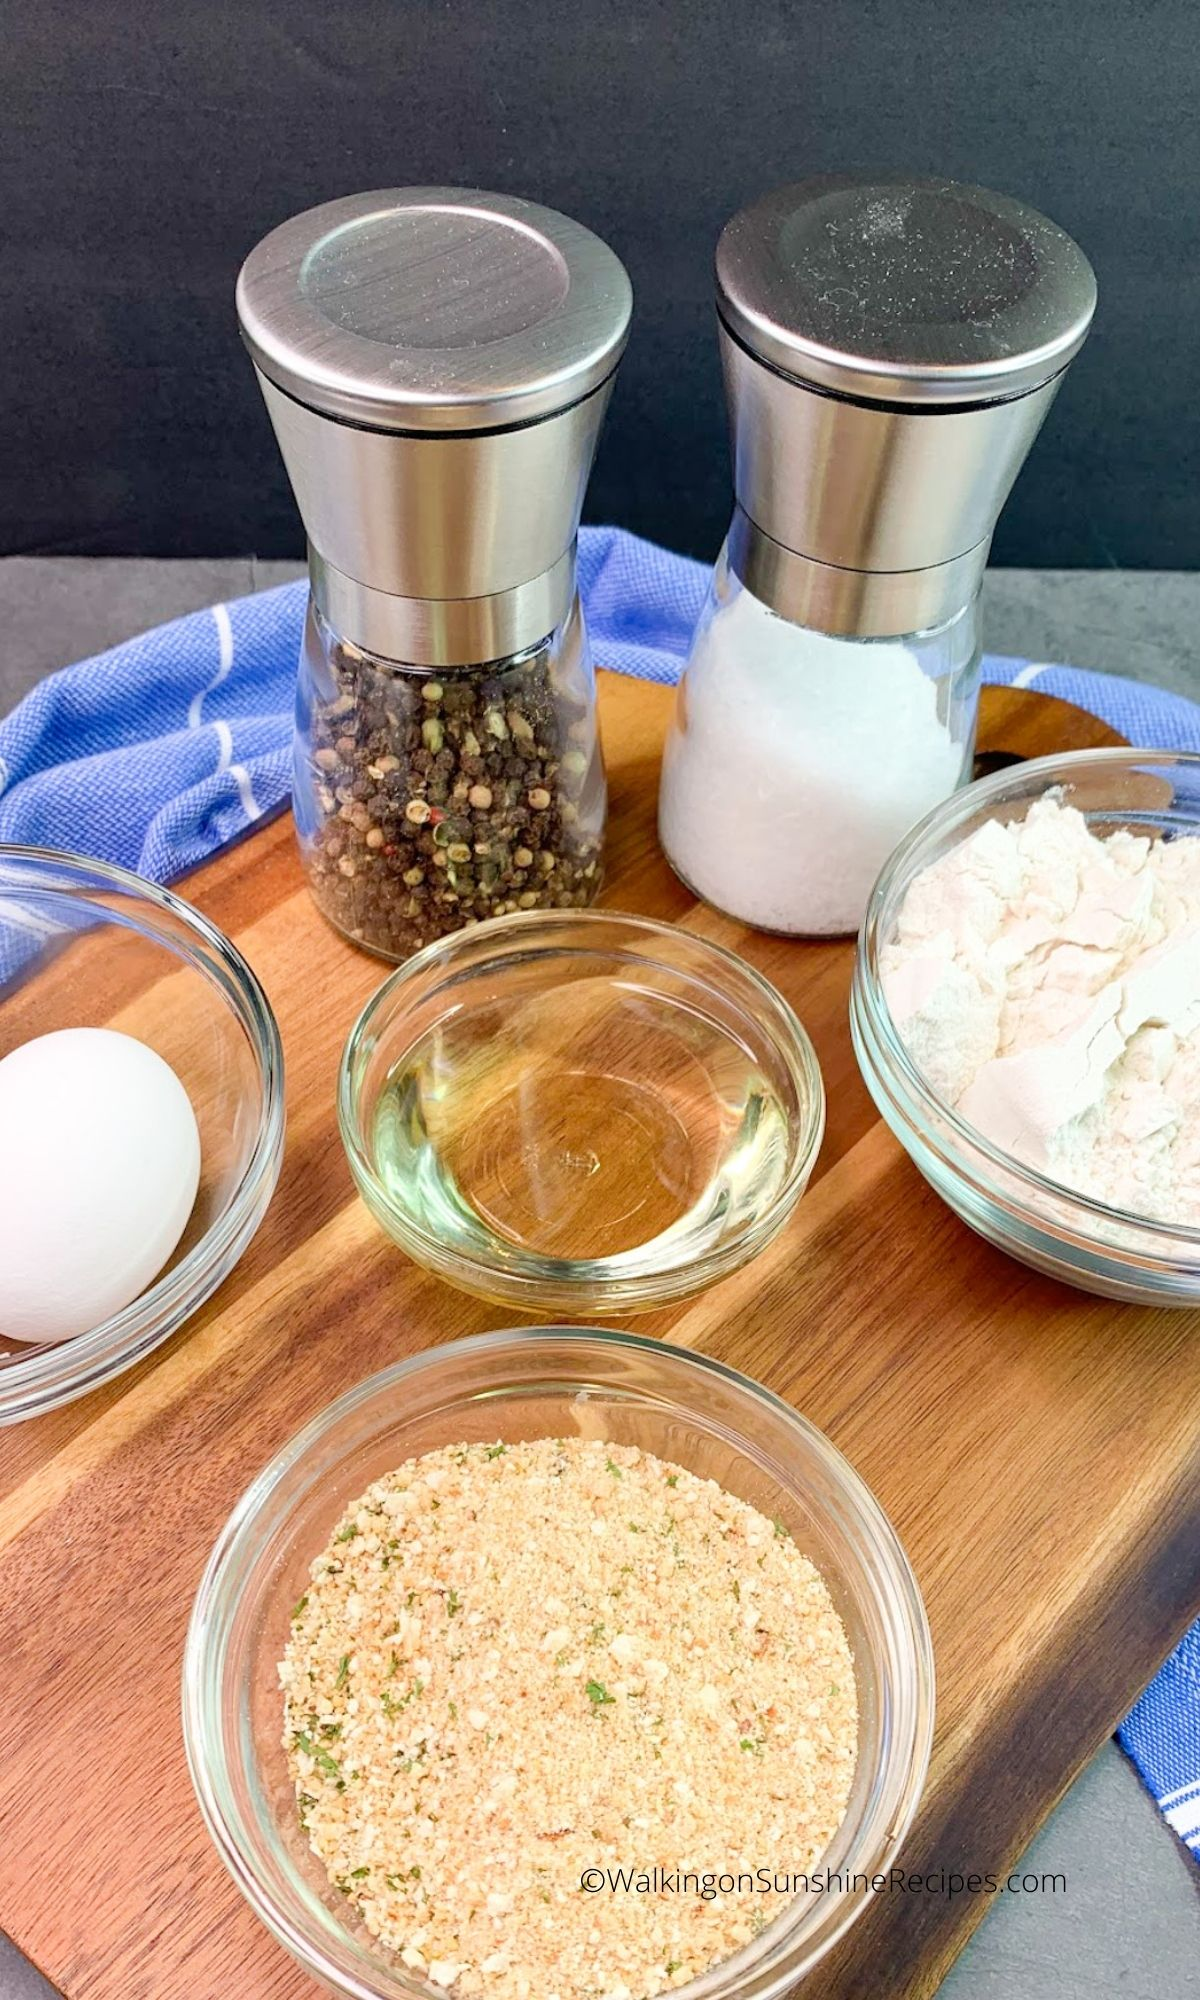 Ingredients for Chicken Cutlets with Gravy.